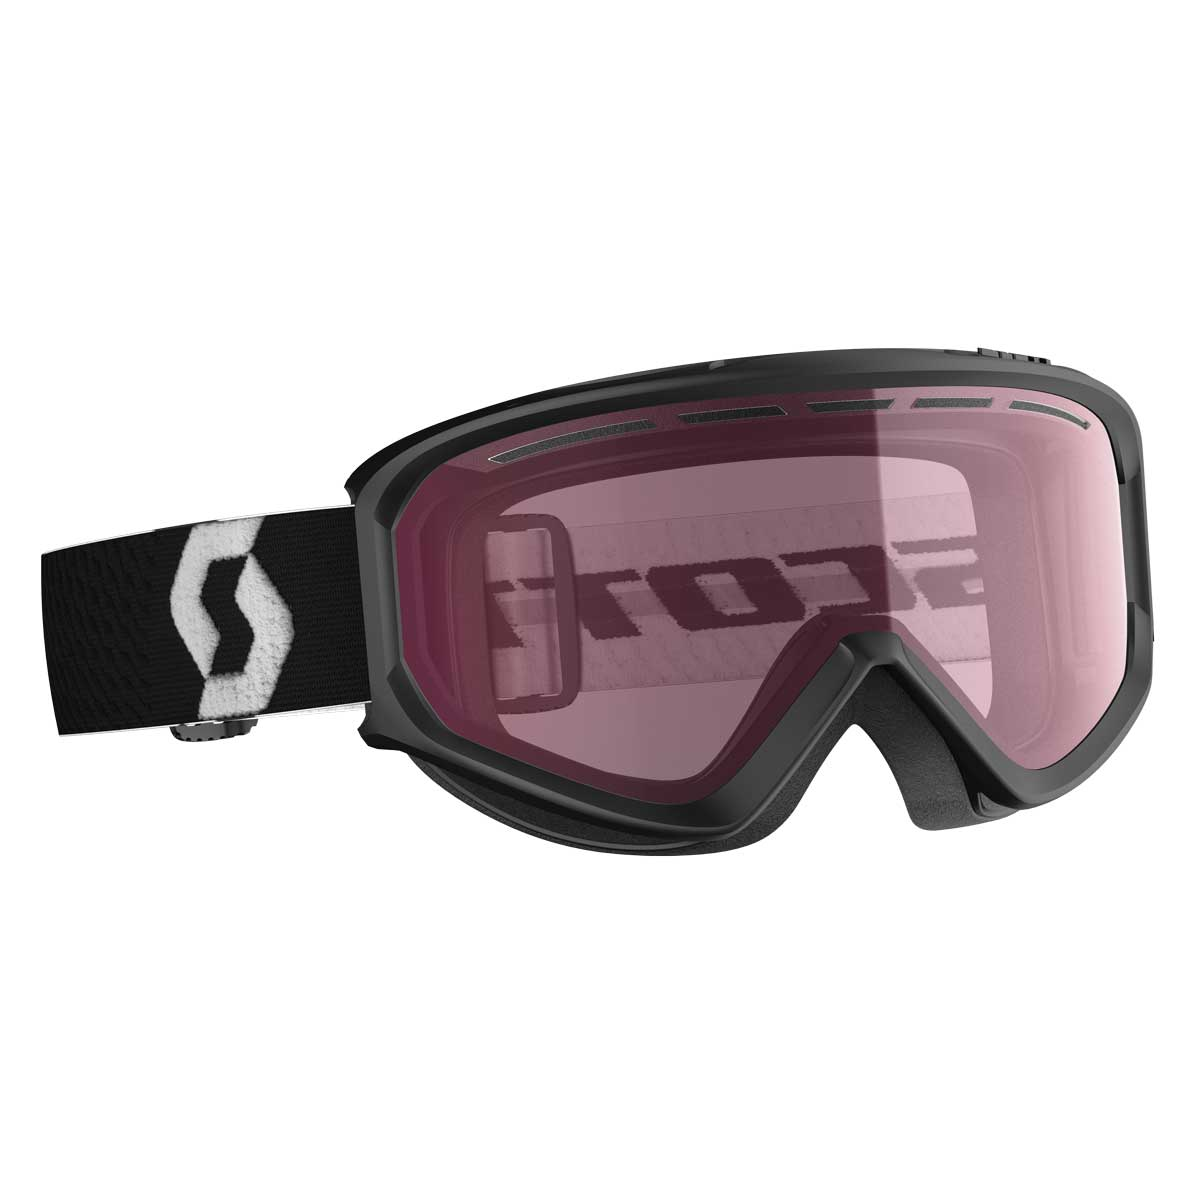 scott fact goggle in black with illuminator